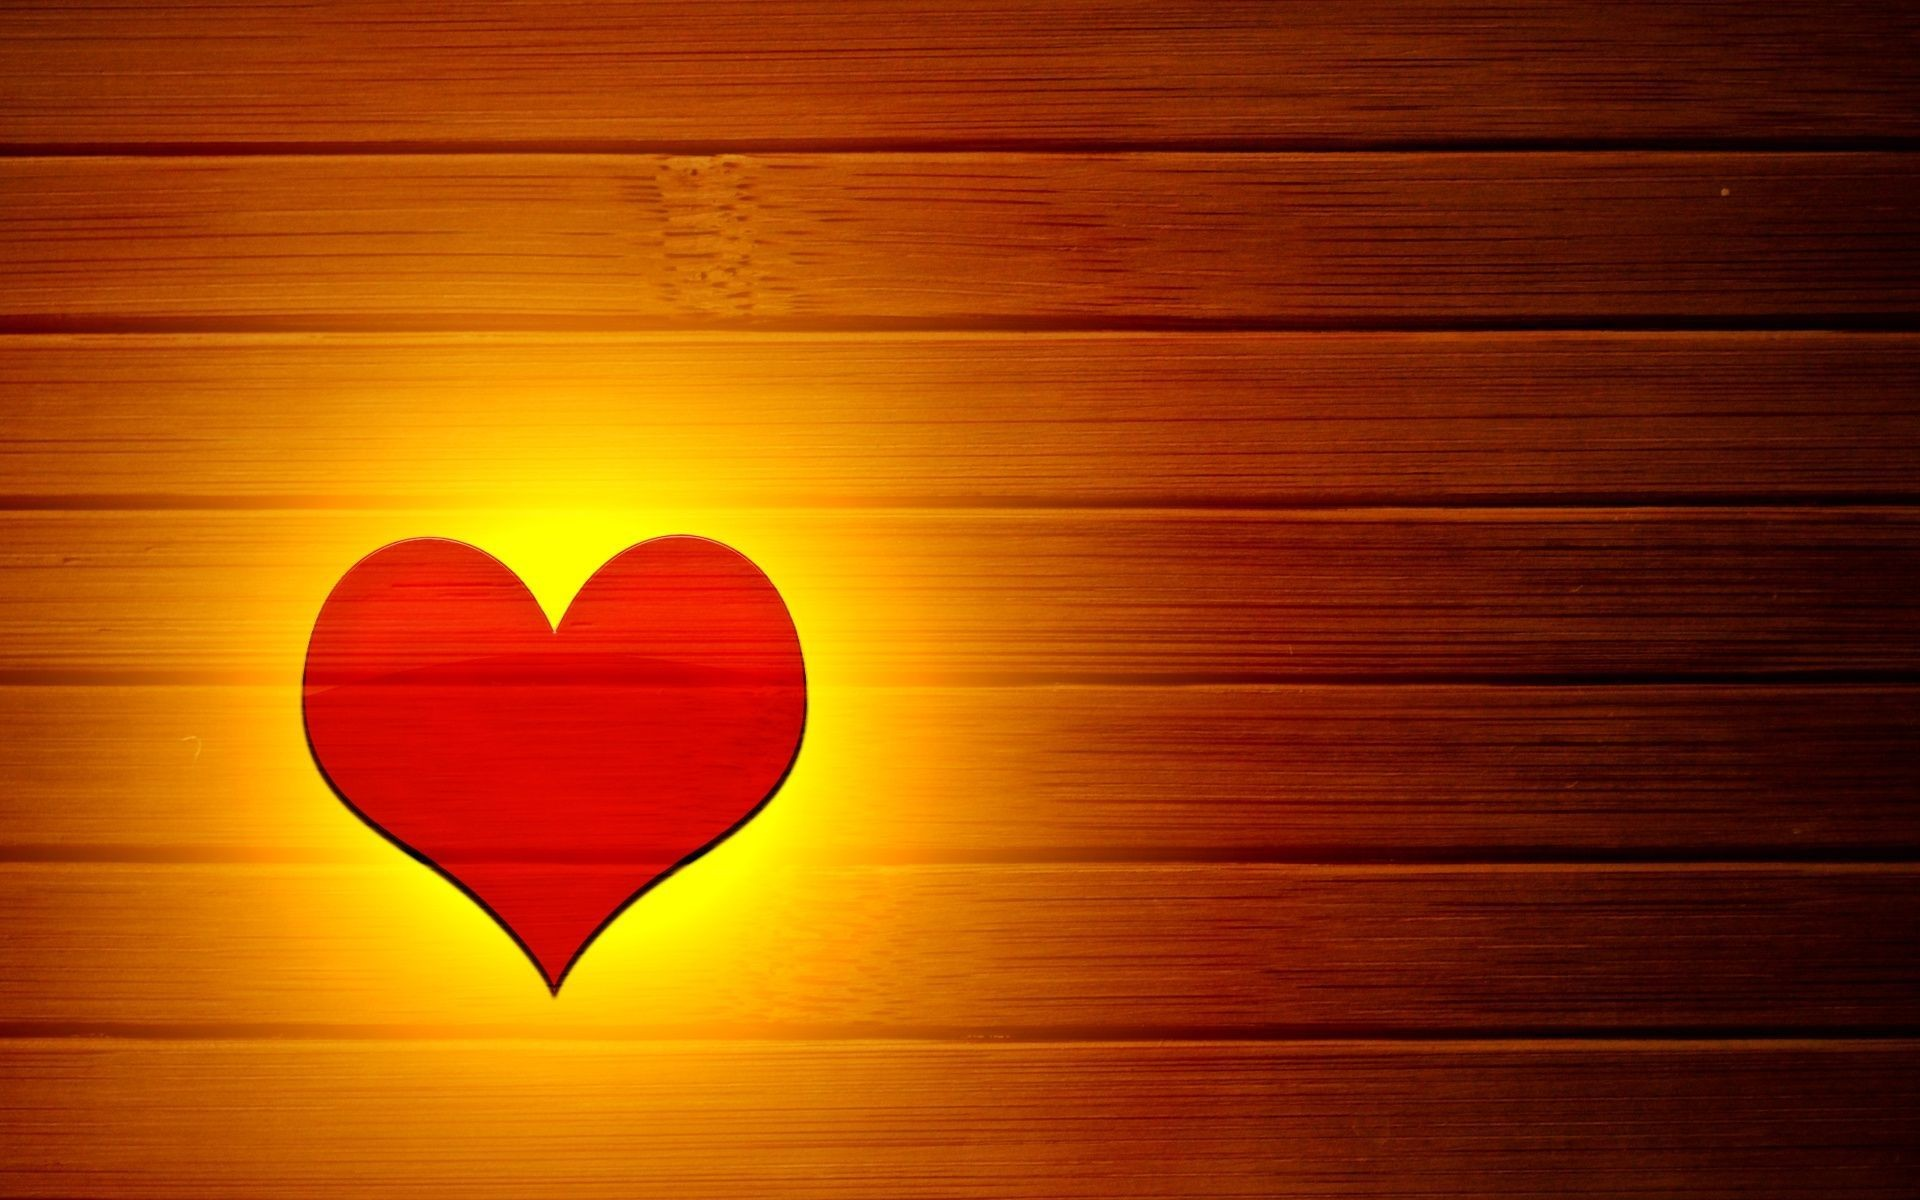 Love Images Wallpaper Large Size : 67+ Love backgrounds ?? Download free cool full HD wallpapers for desktop, mobile, laptop in any ...